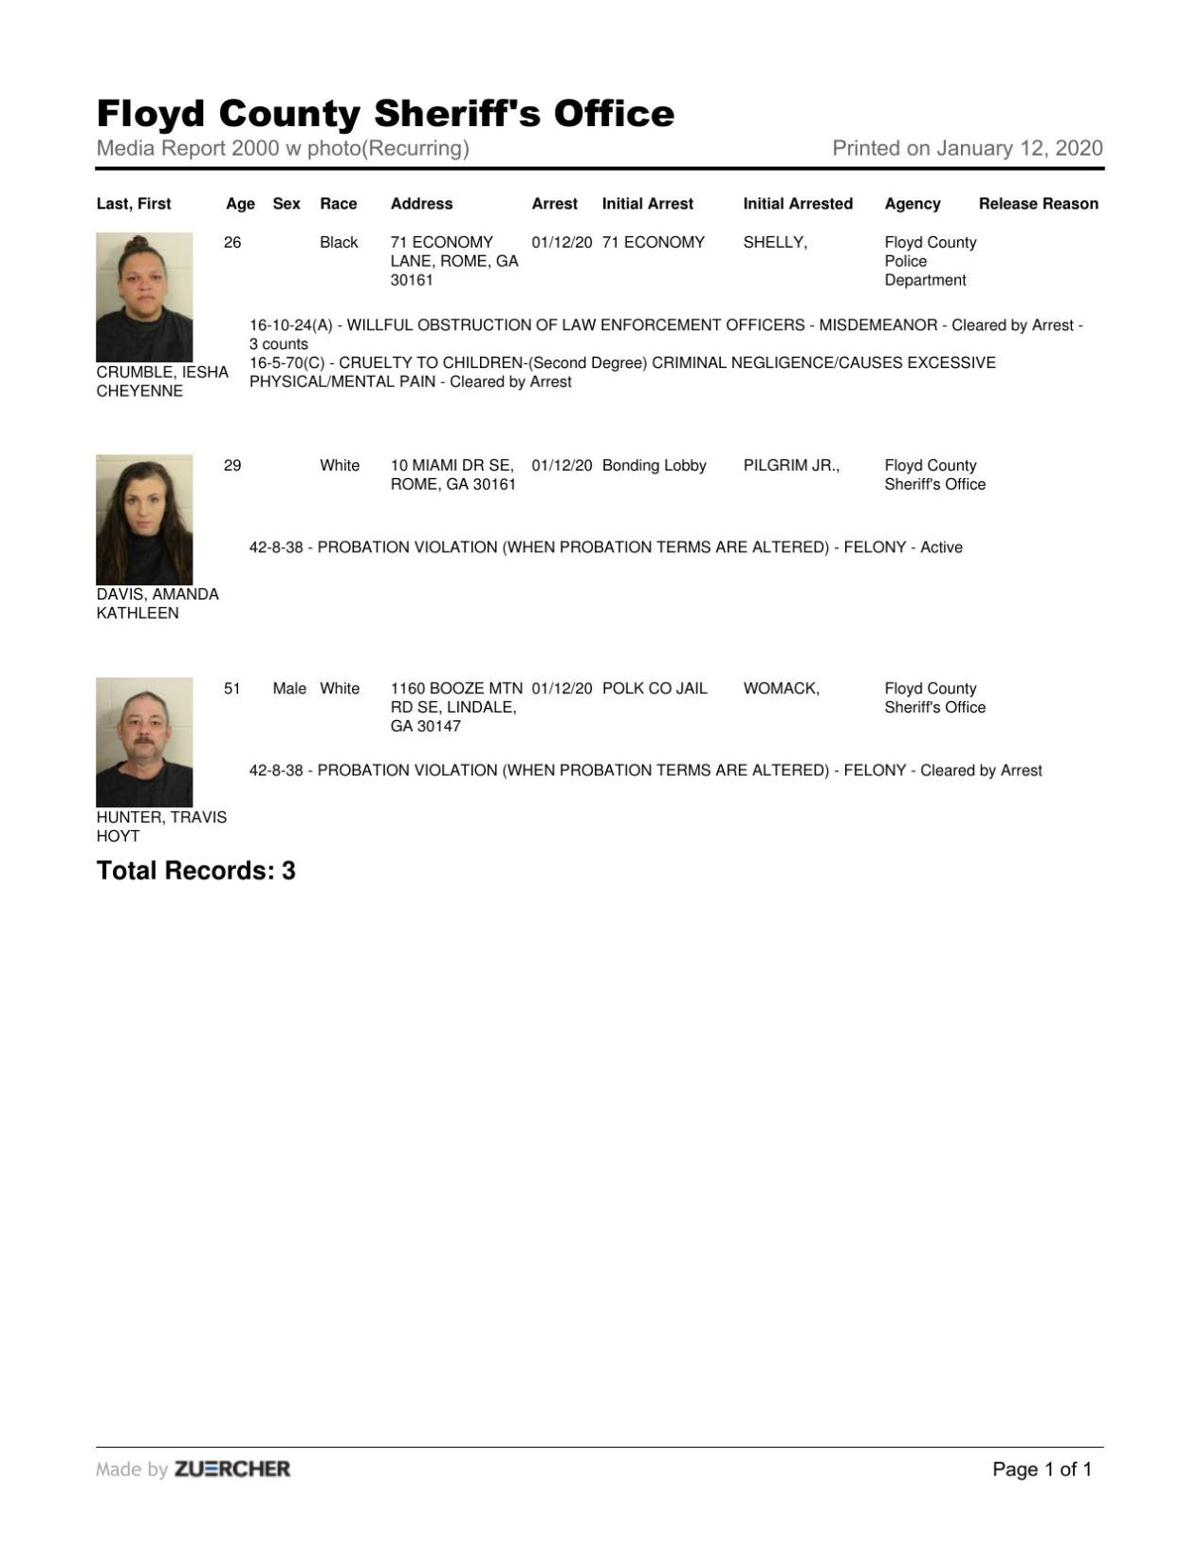 Floyd County Jail report for Sunday, Jan. 12